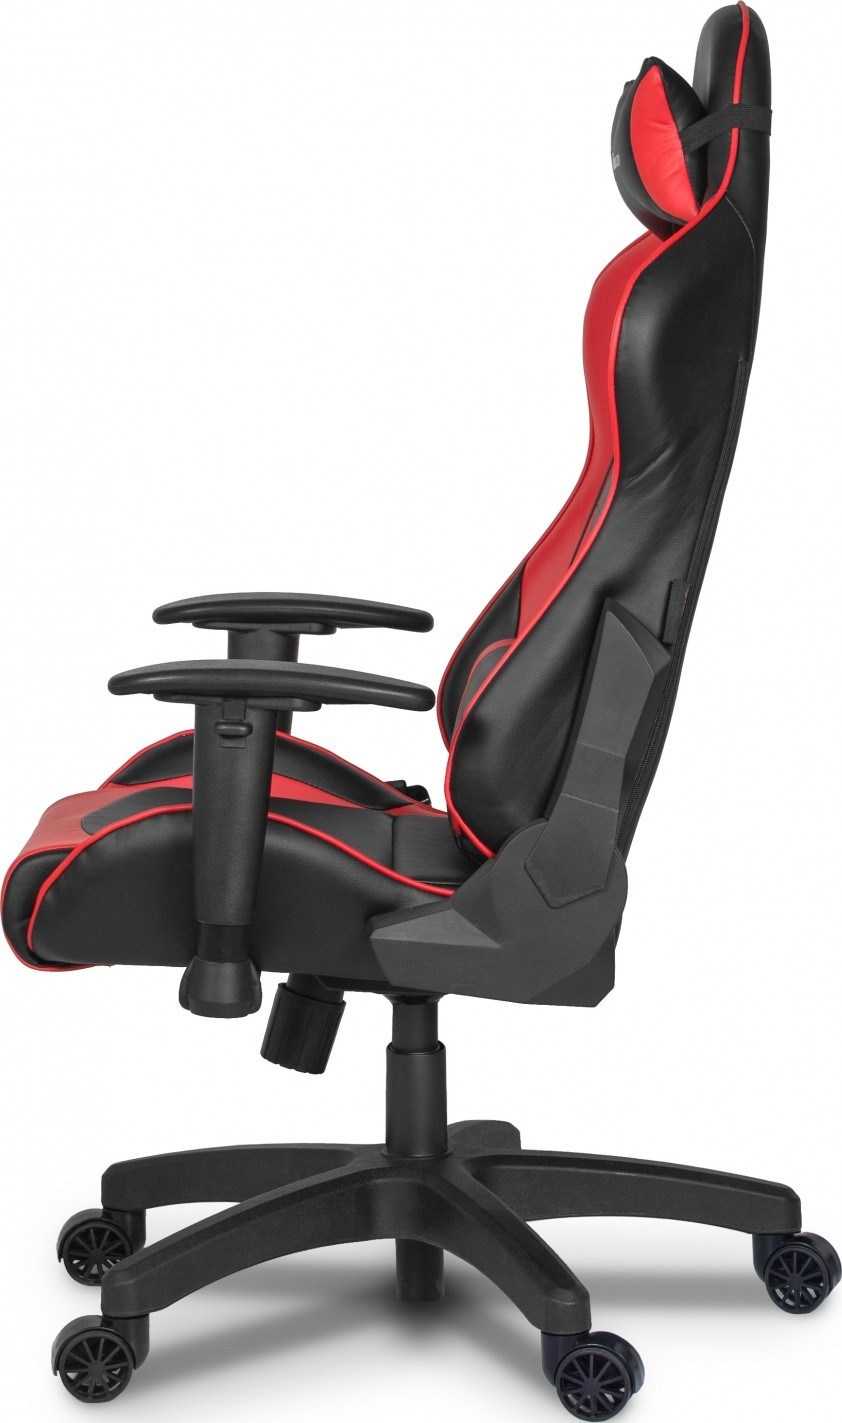 Arozzi Verona Jr Red Racing Style Gaming Chair For Kids